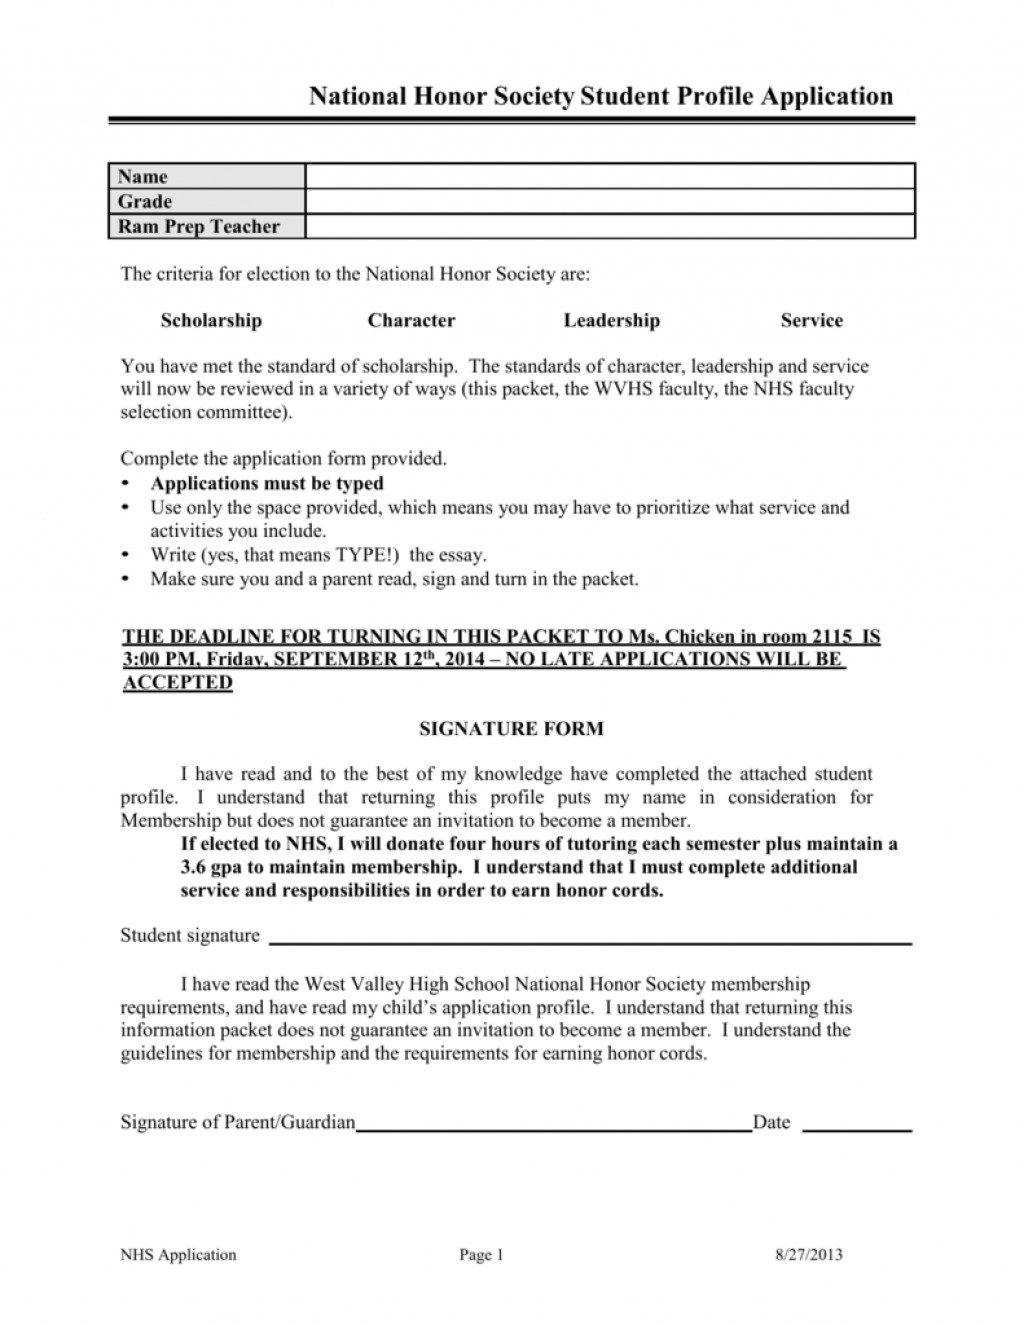 014 National Honor Society Character Essay Example 006915569 1 Staggering Examples Large